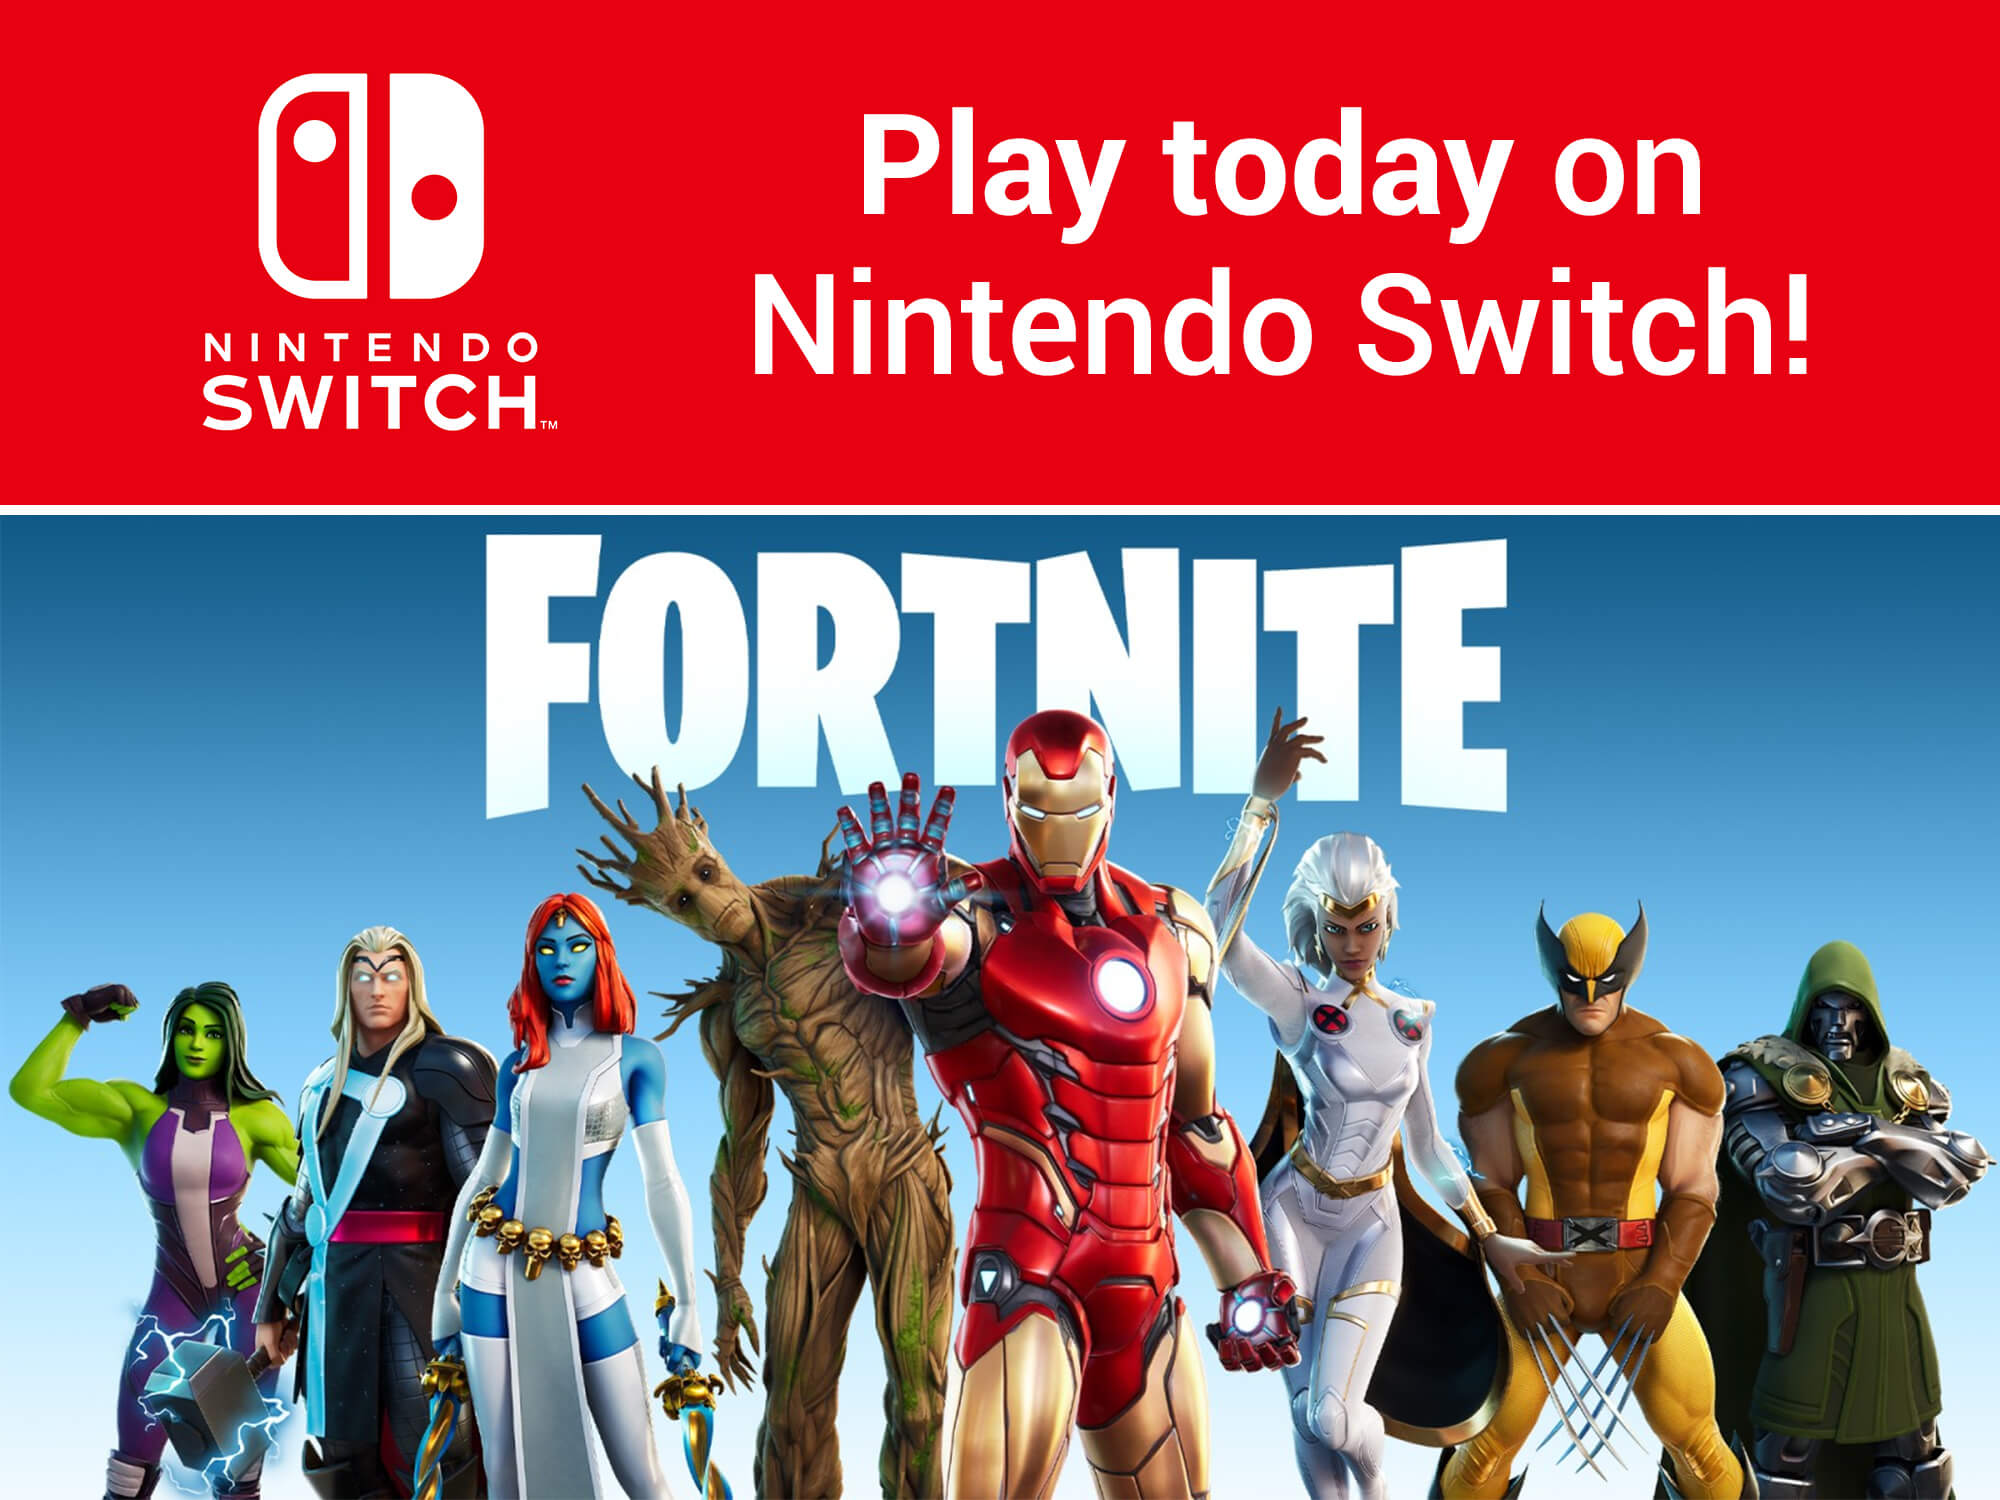 Fortnite on Nintendo Switch consoles